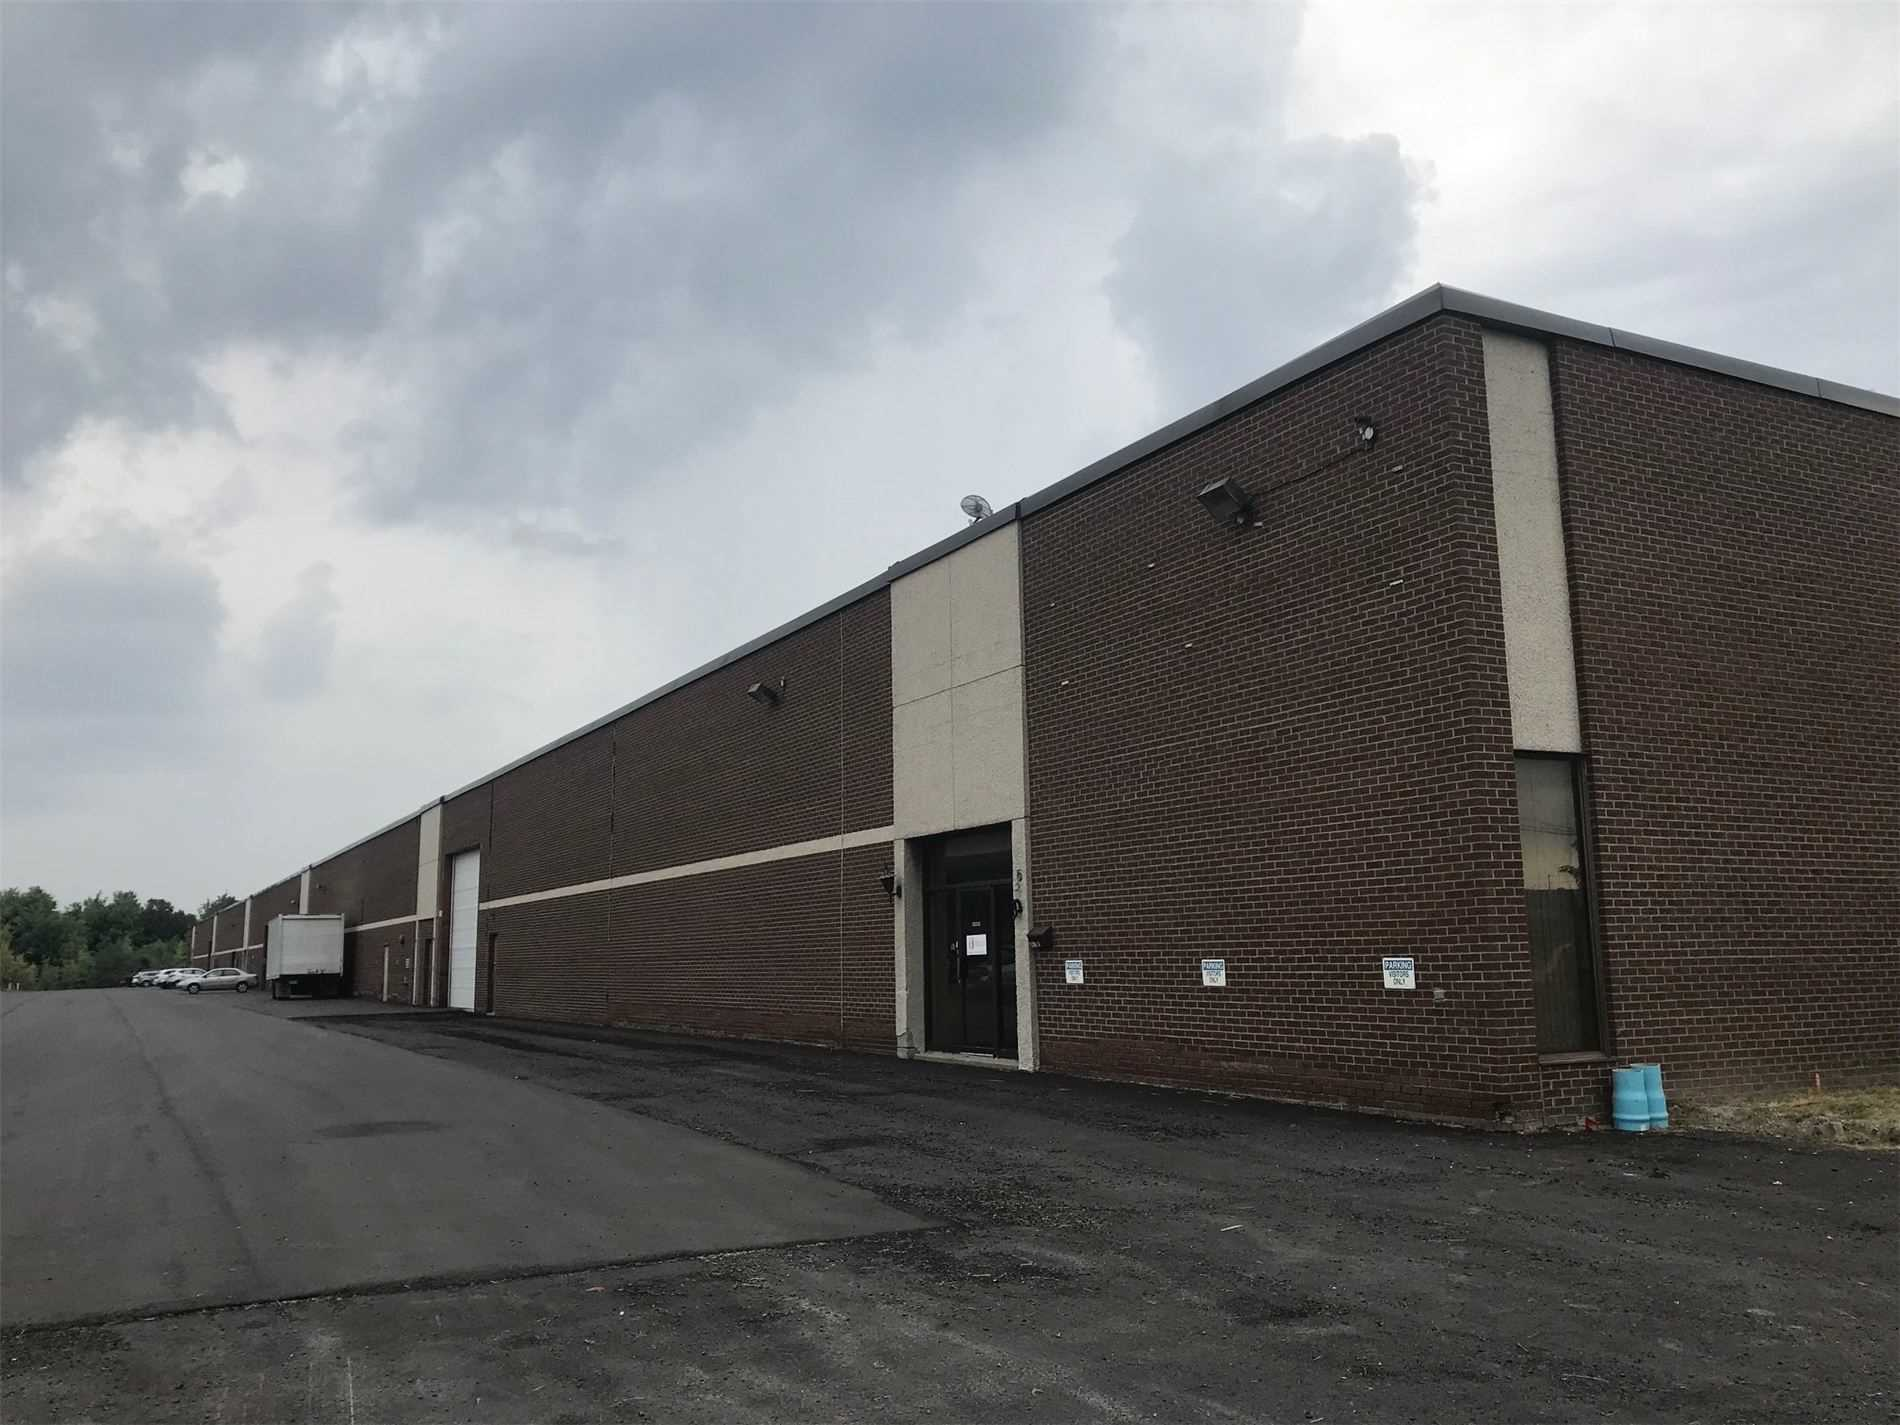 * Excellent Location * Combination Shipping * Minimal Office No Ac * Space Consist Of Three Bays With One Demising Wall With Opening * Note 4 Truck Levels And 1 Drive In Door *